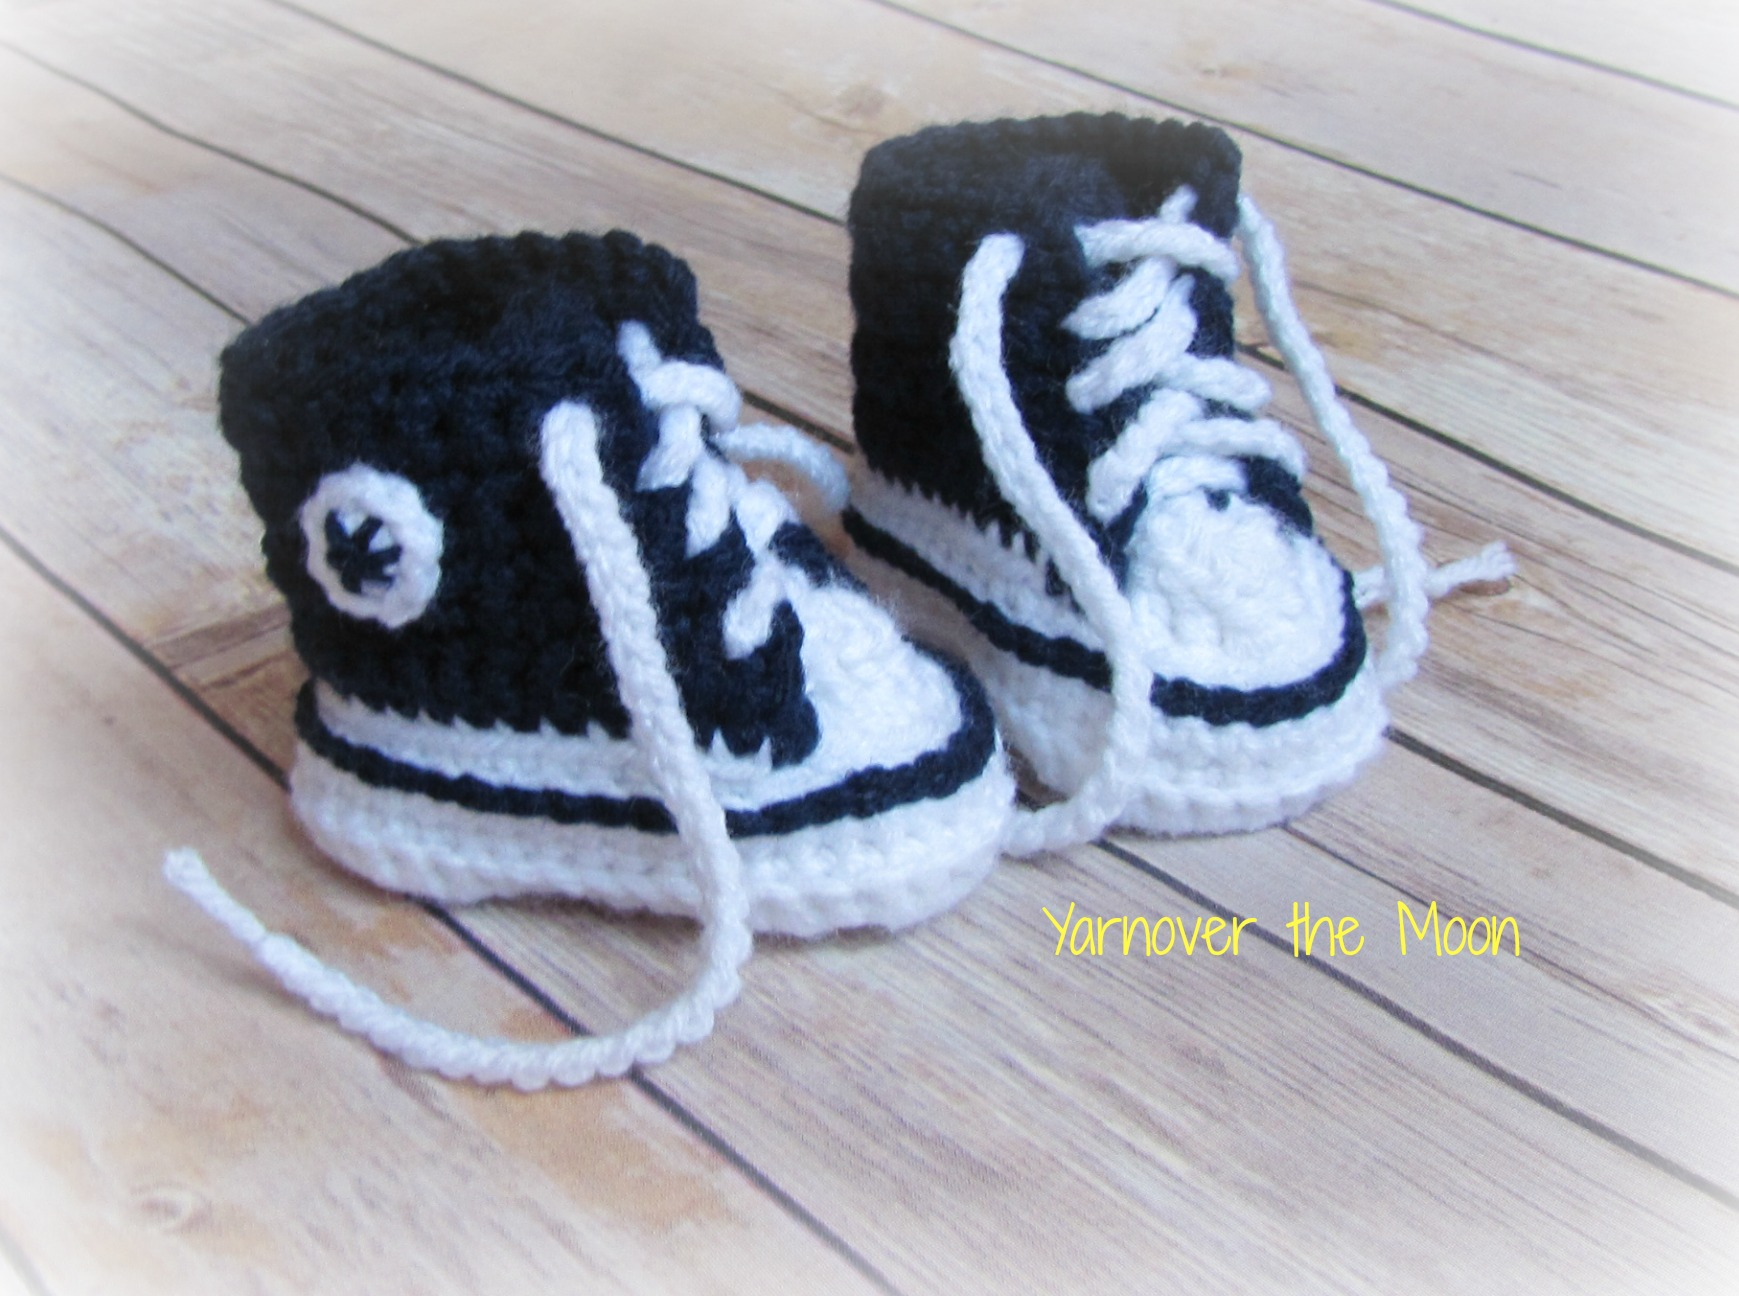 441b0d62e6d Crochet Baby Converse Sneakers · Yarnover the Moon · Online Store ...